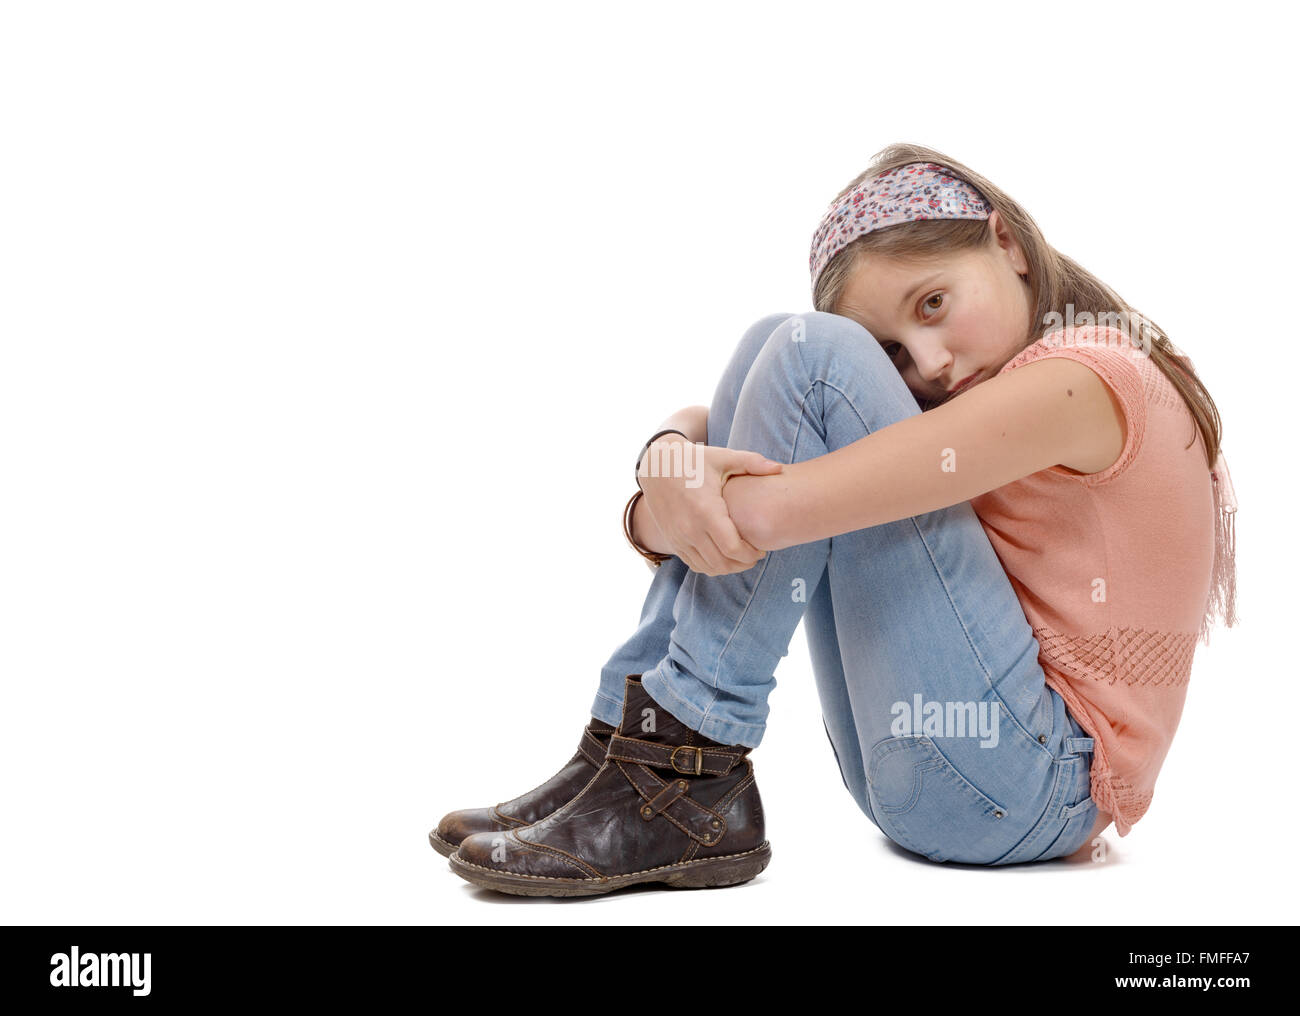 a preteen girl sad  is sitting on the floor - Stock Image